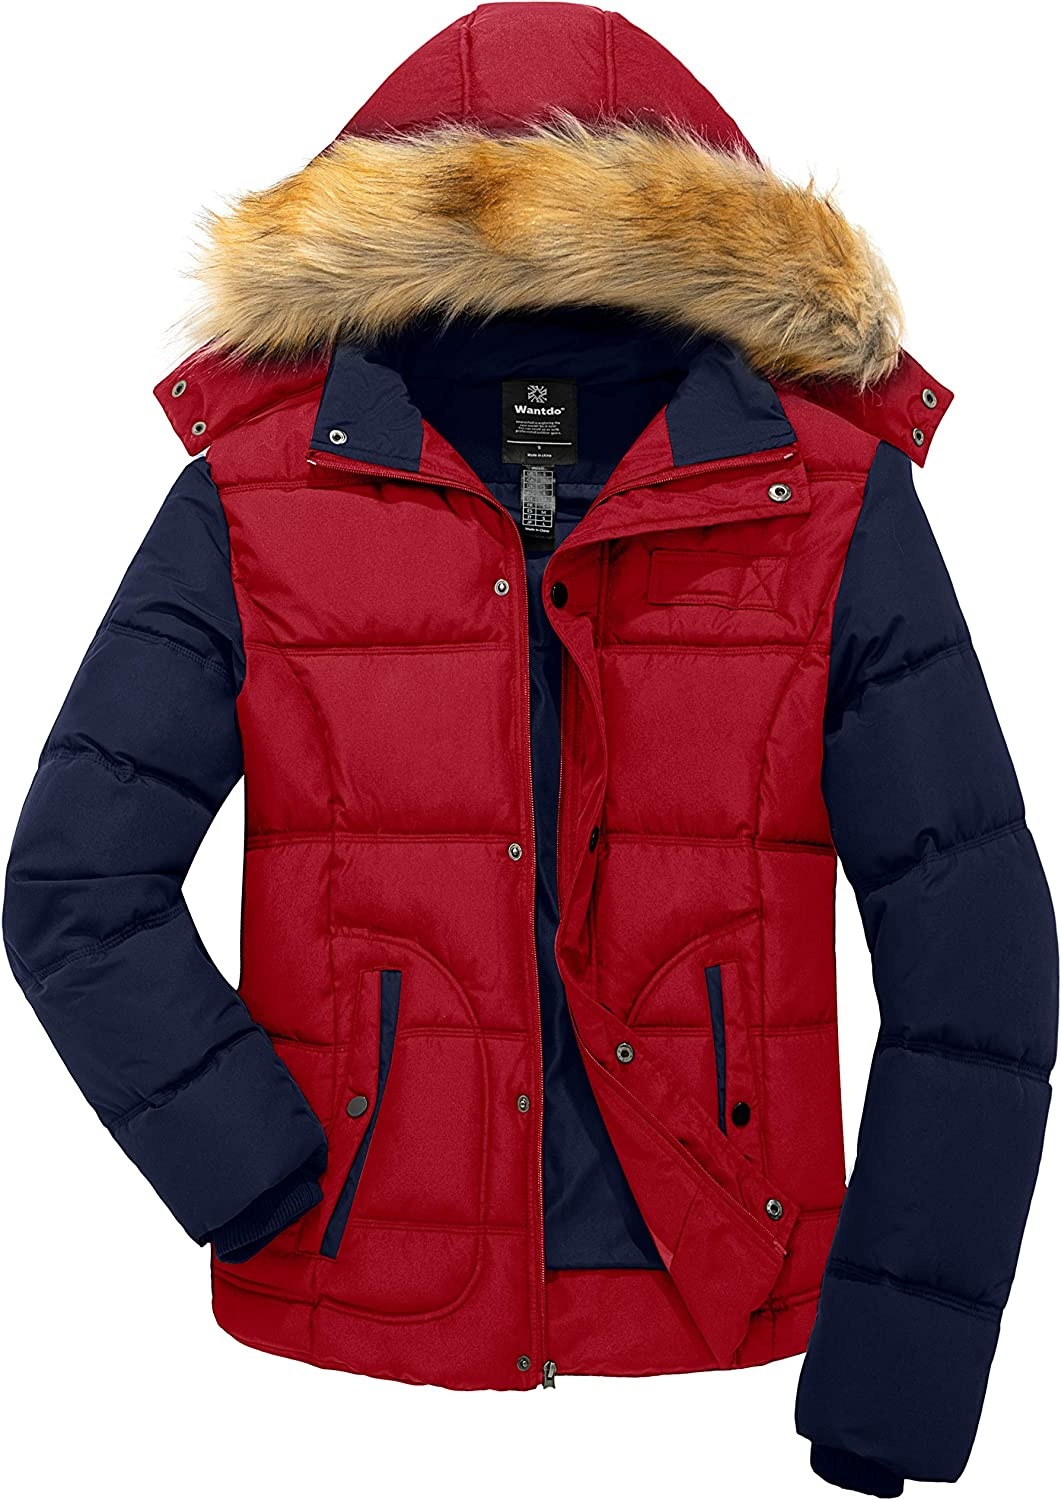 New MENS Waterproof  Puffer Padded Quilted Zipper Jacket Detachable Hooded Coat